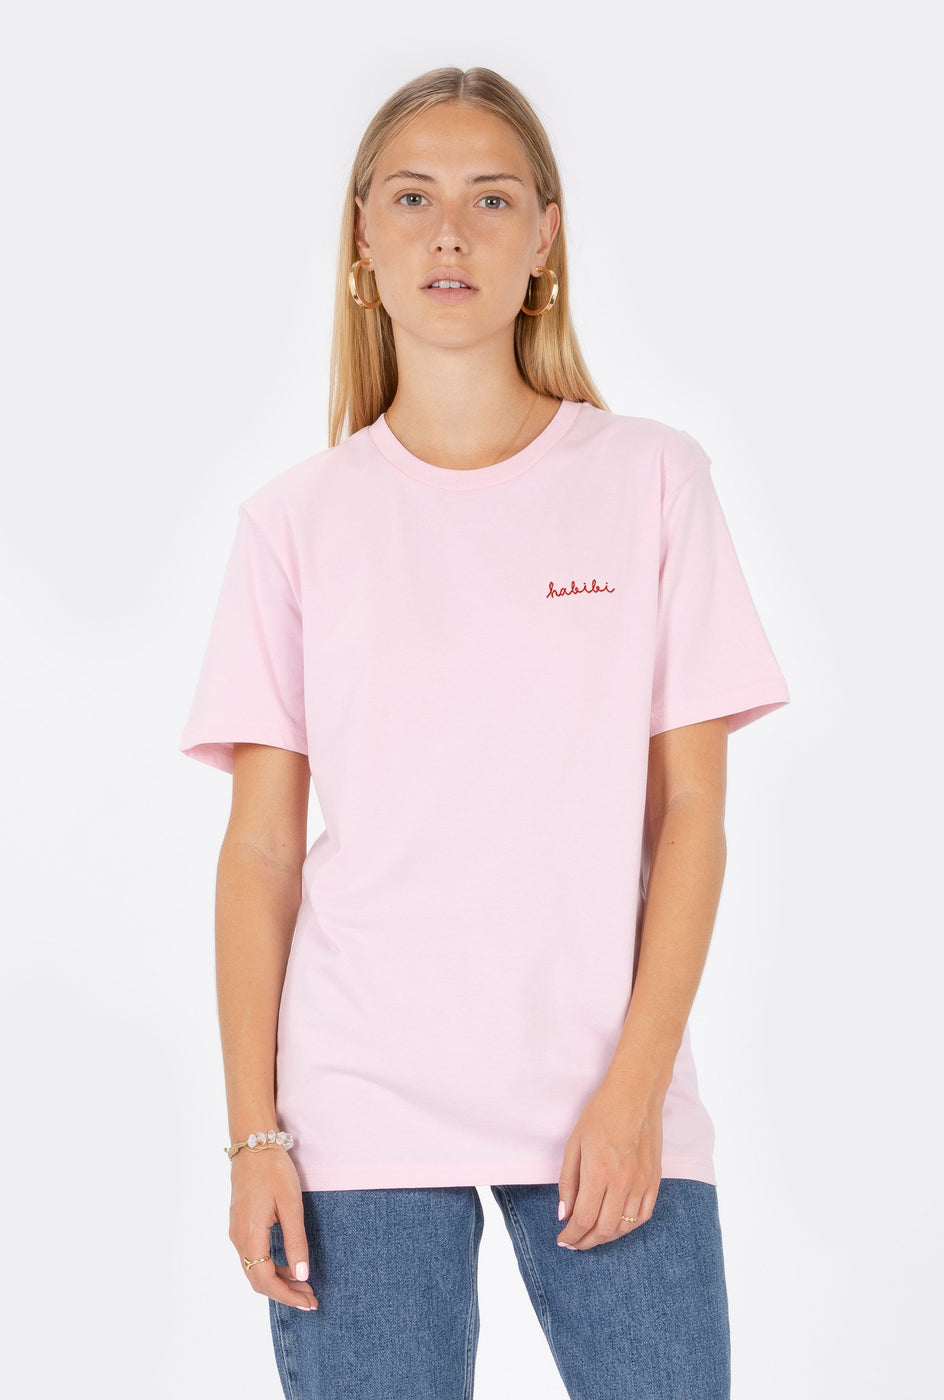 T-Shirt S/S Habibi - Embroidered